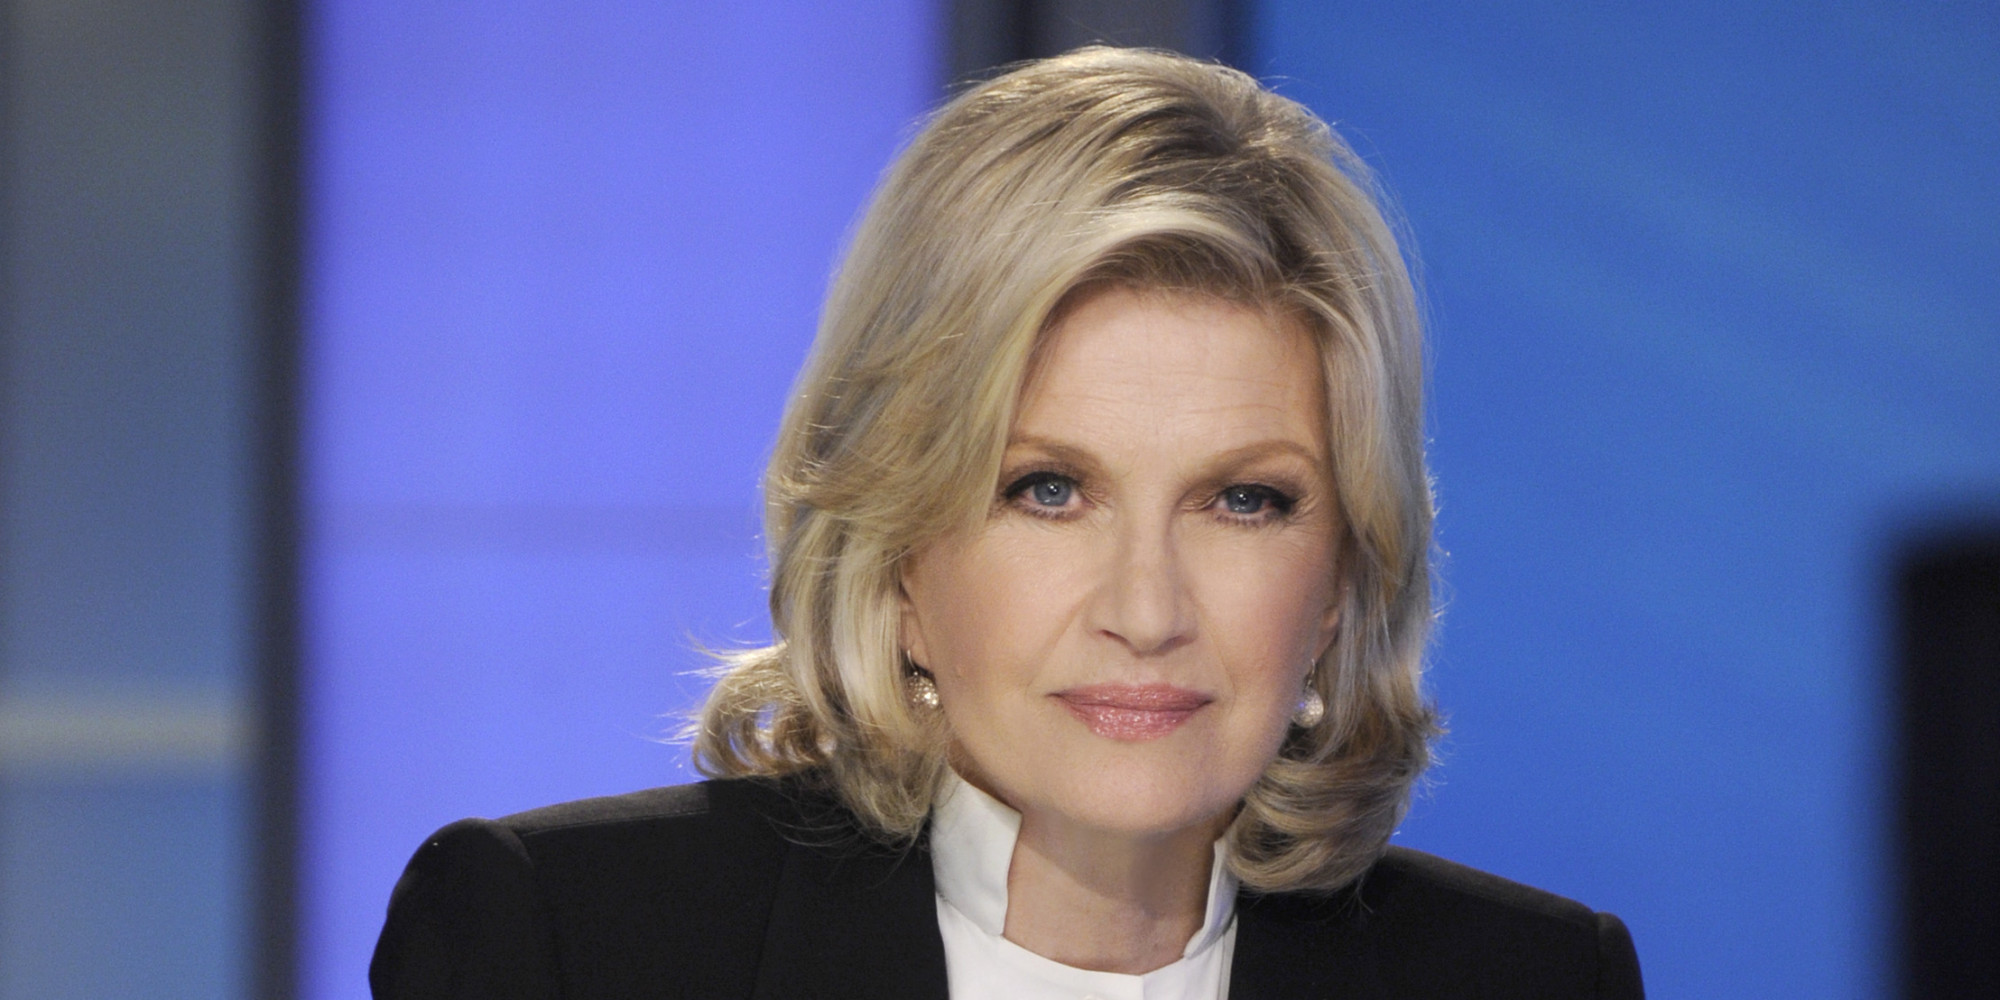 diane sawyer sound of music